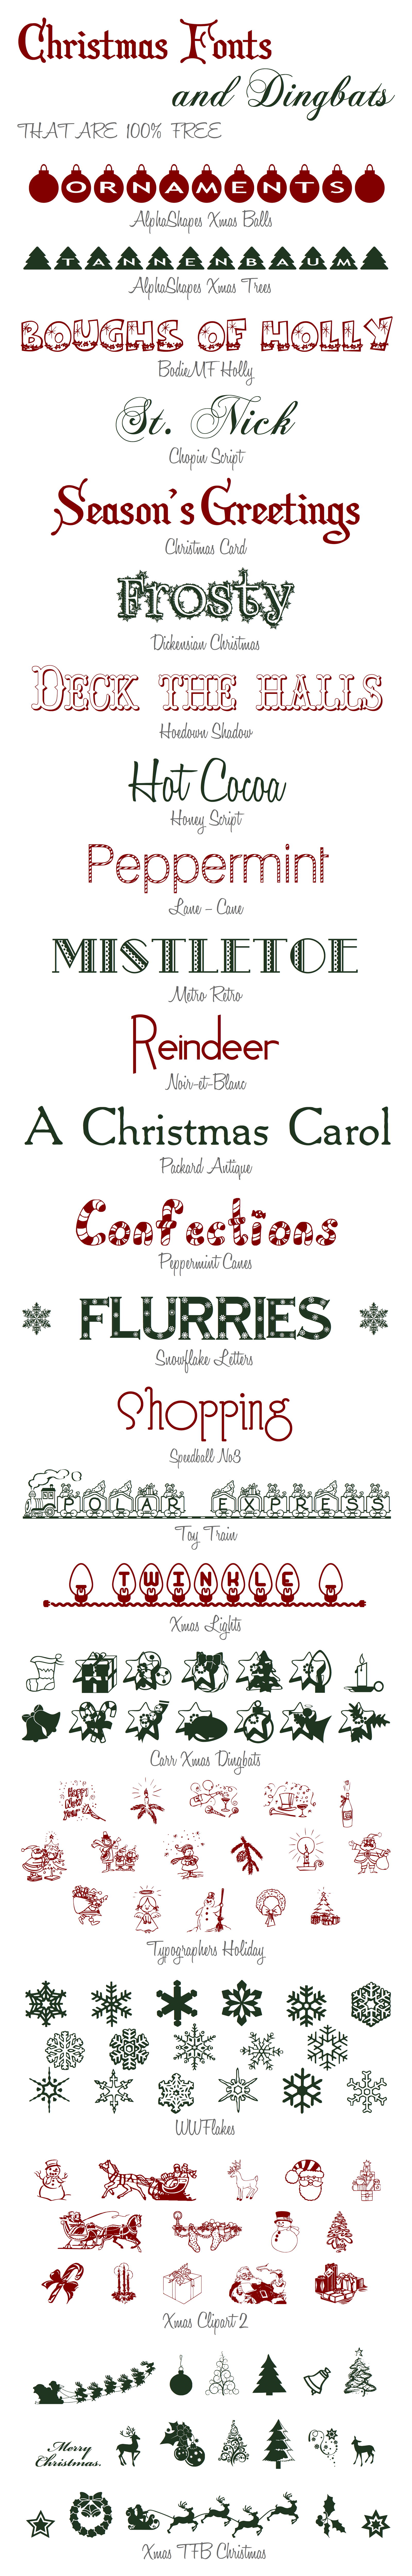 Christmas and holiday fonts and dingbats that are 100% free, even for commercial use